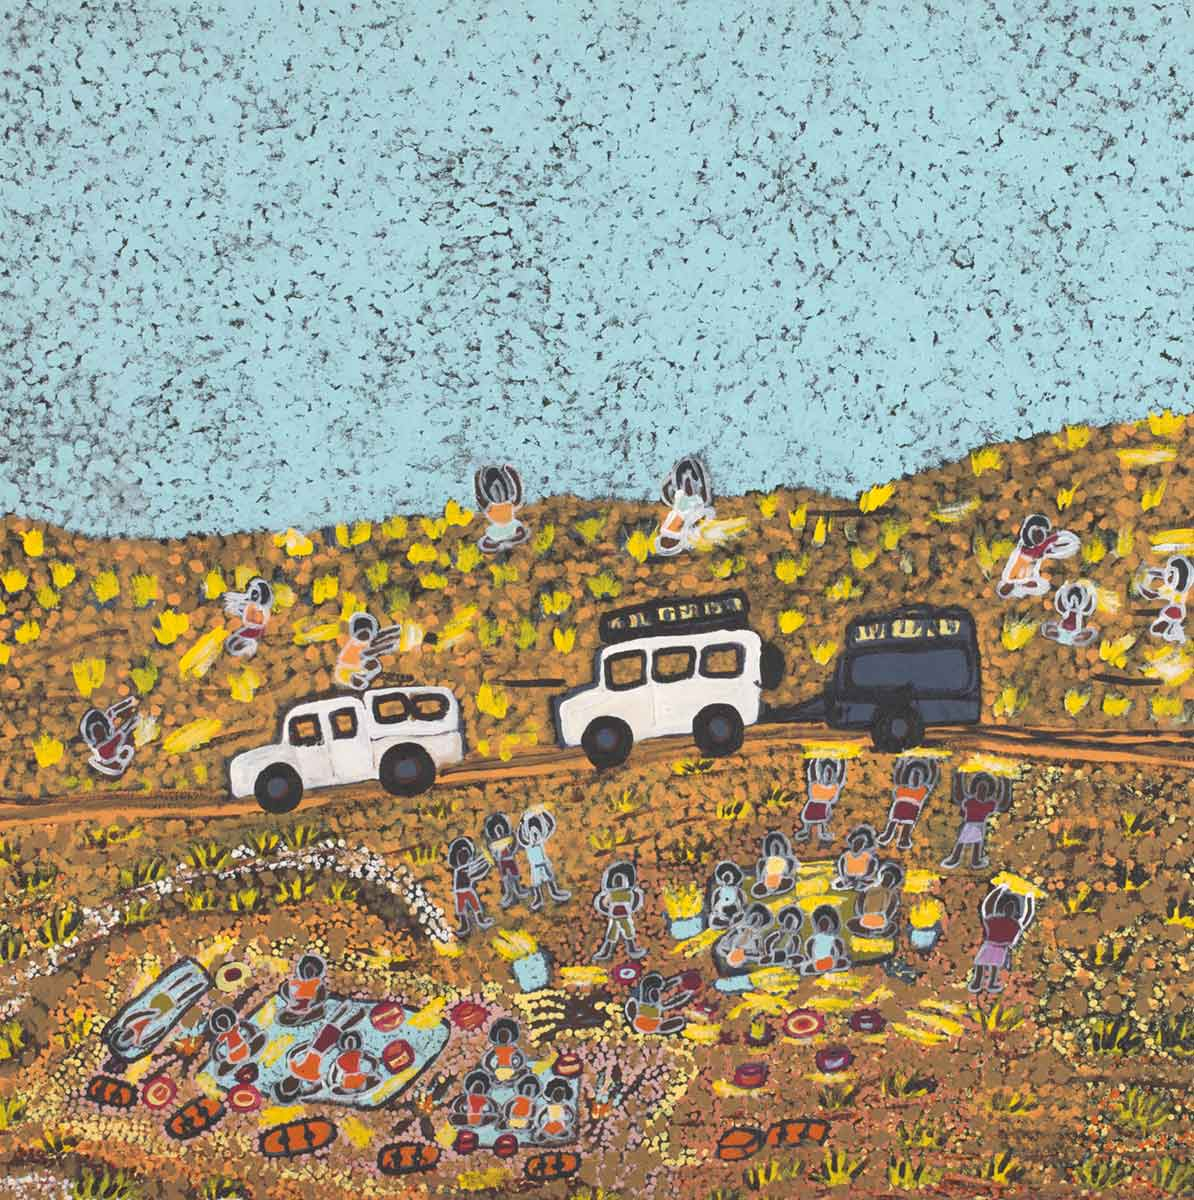 An acrylic painting on canvas showing two vehicles, one with a trailer, travelling on a road past a gathering of people. - click to view larger image